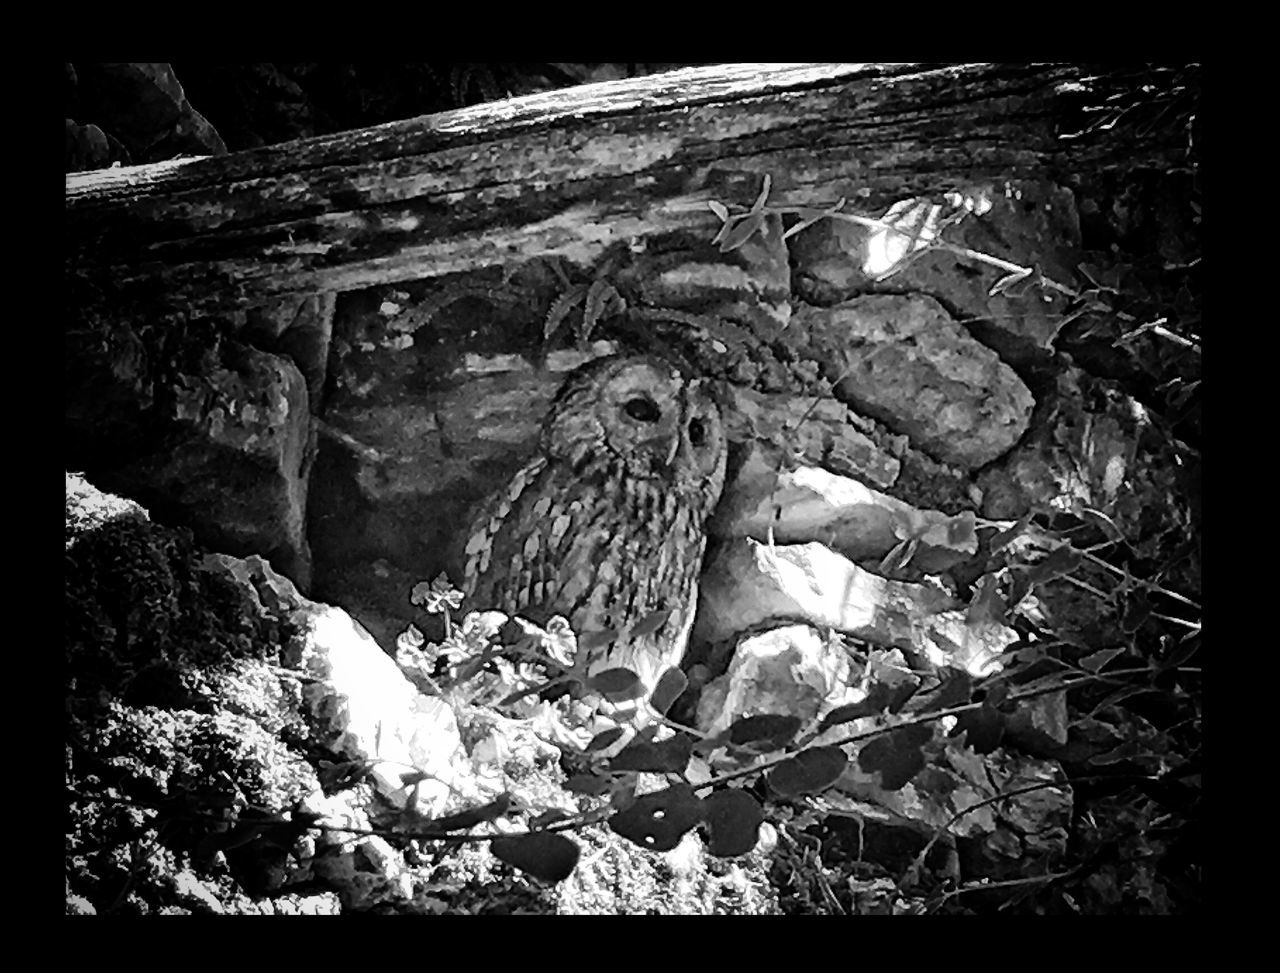 No People Outdoors Nature One Animal Day Animals In The Wild Animal Themes Close-up Bird Bird Of Prey Owl Awesome_shots Nature Photography EyeEm Gallery Architecture_collection EyeEm Best Edits Photo Eye4photography  The Great Outdoors - 2017 EyeEm Awards EyeEm Best Shots EyeEmBestPics Photography Photographer Black & White Awesome The Great Outdoors - 2017 EyeEm Awards Live For The Story